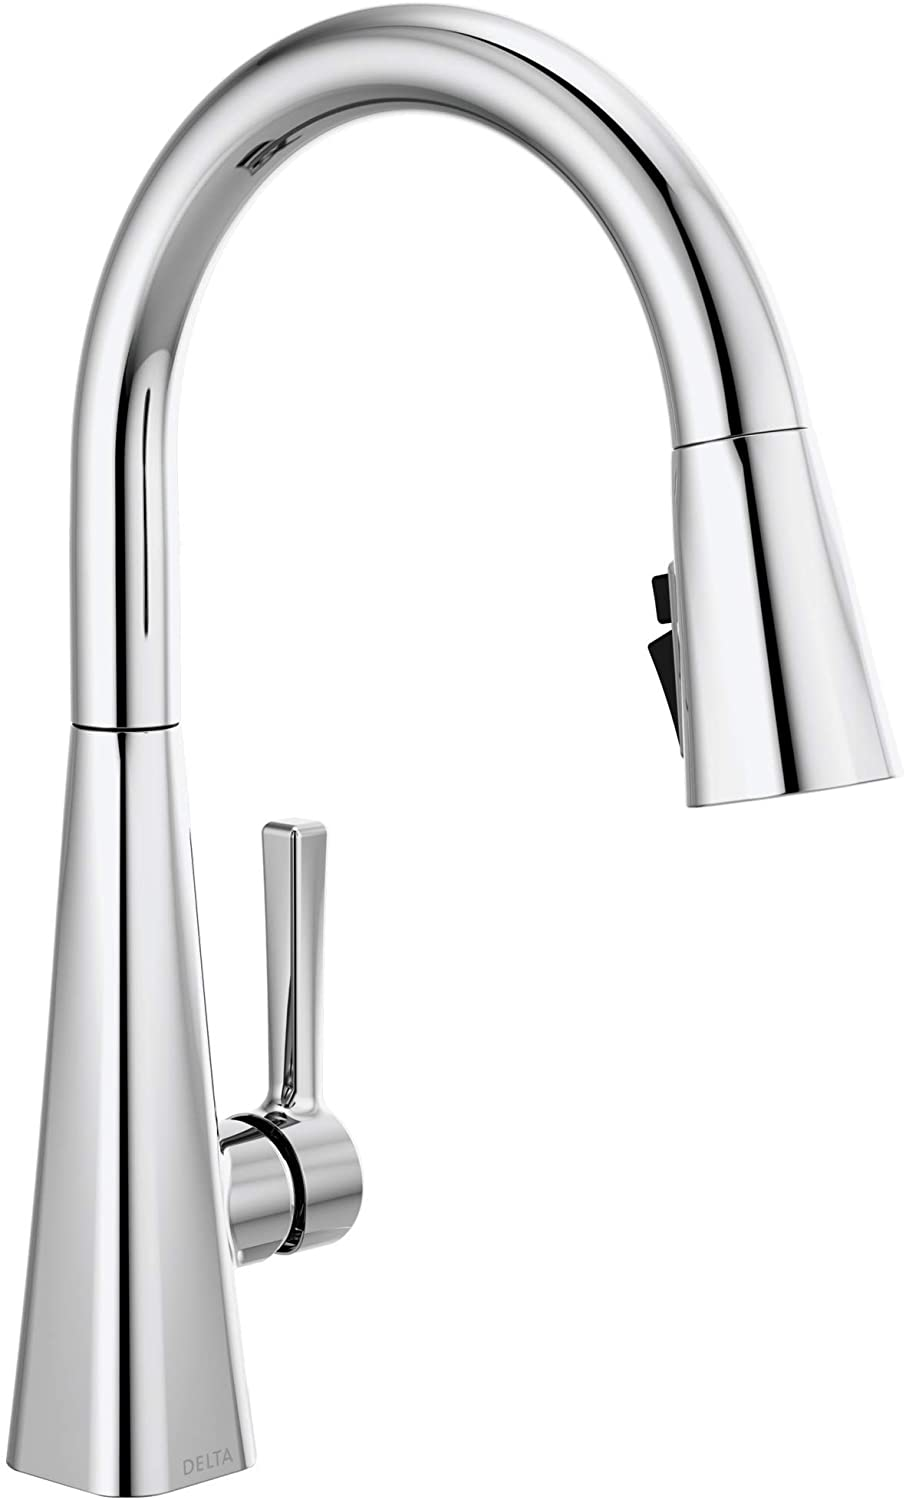 Delta Faucet Lenta Single-Handle Kitchen Sink Faucet with Pull Down Sprayer and Magnetic Docking Spray Head, Chrome 19802Z-DST